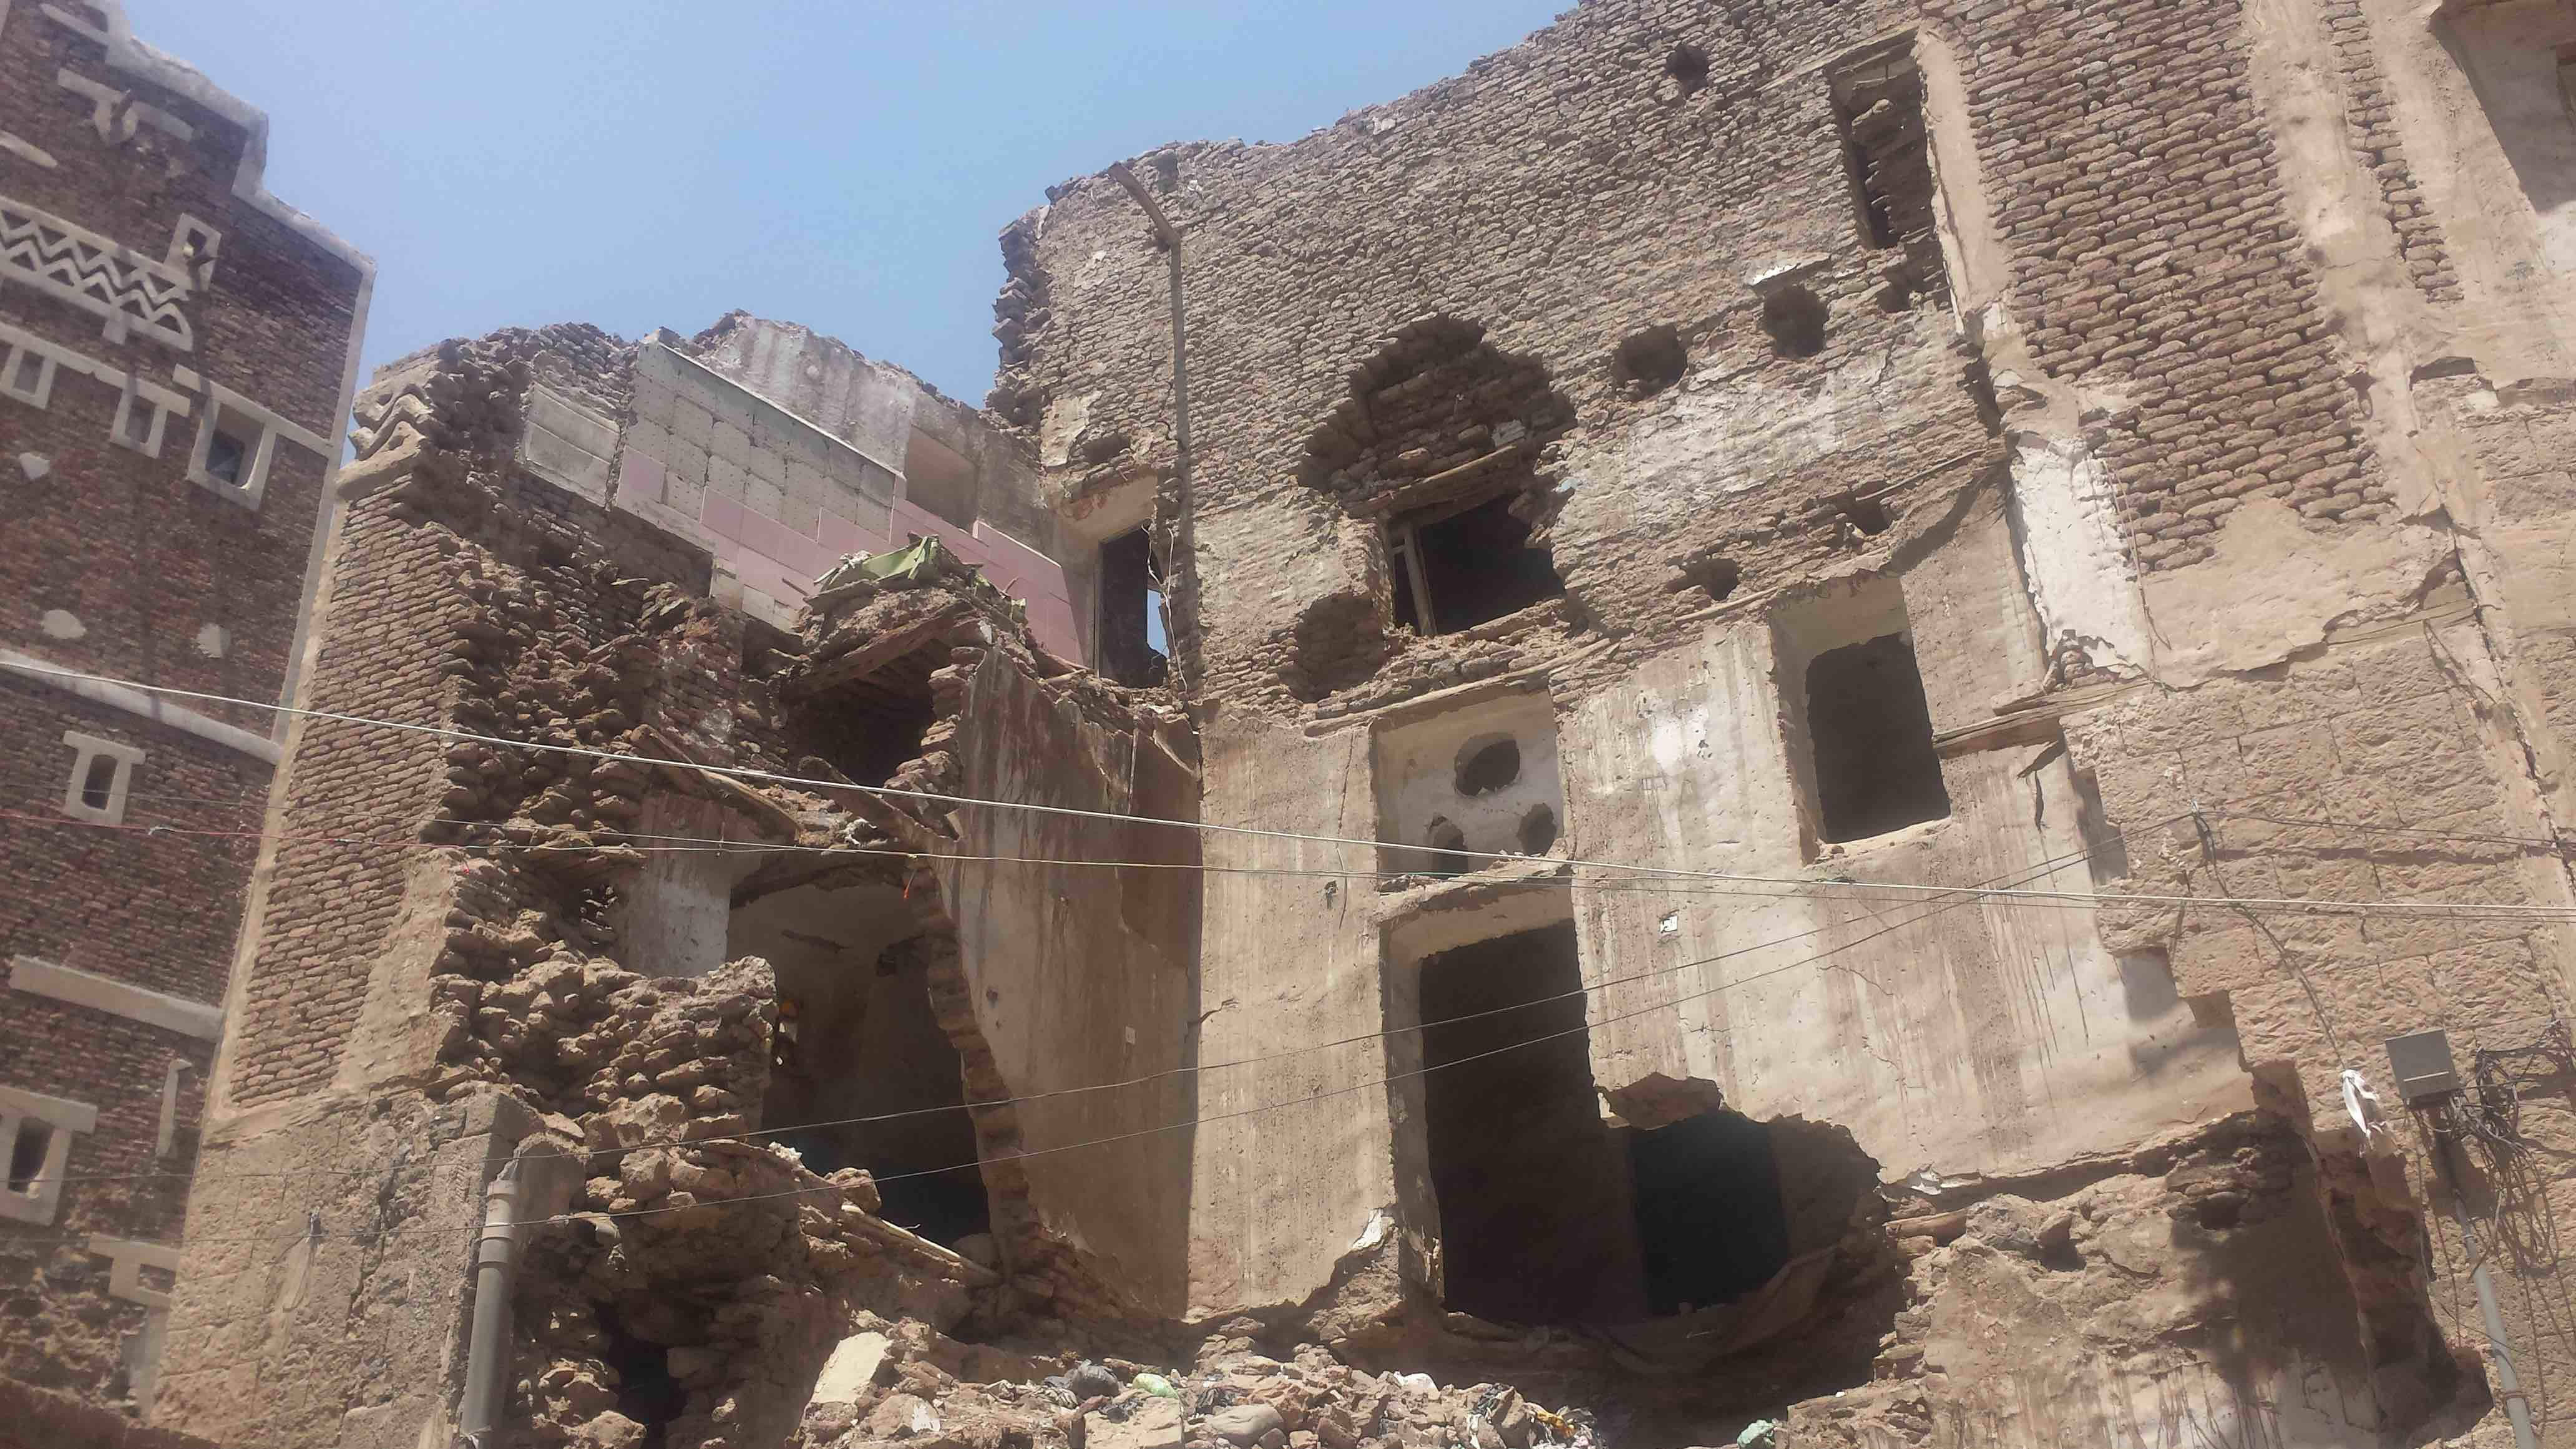 Yemeni Historical Sites Are Becoming Casualties of War.